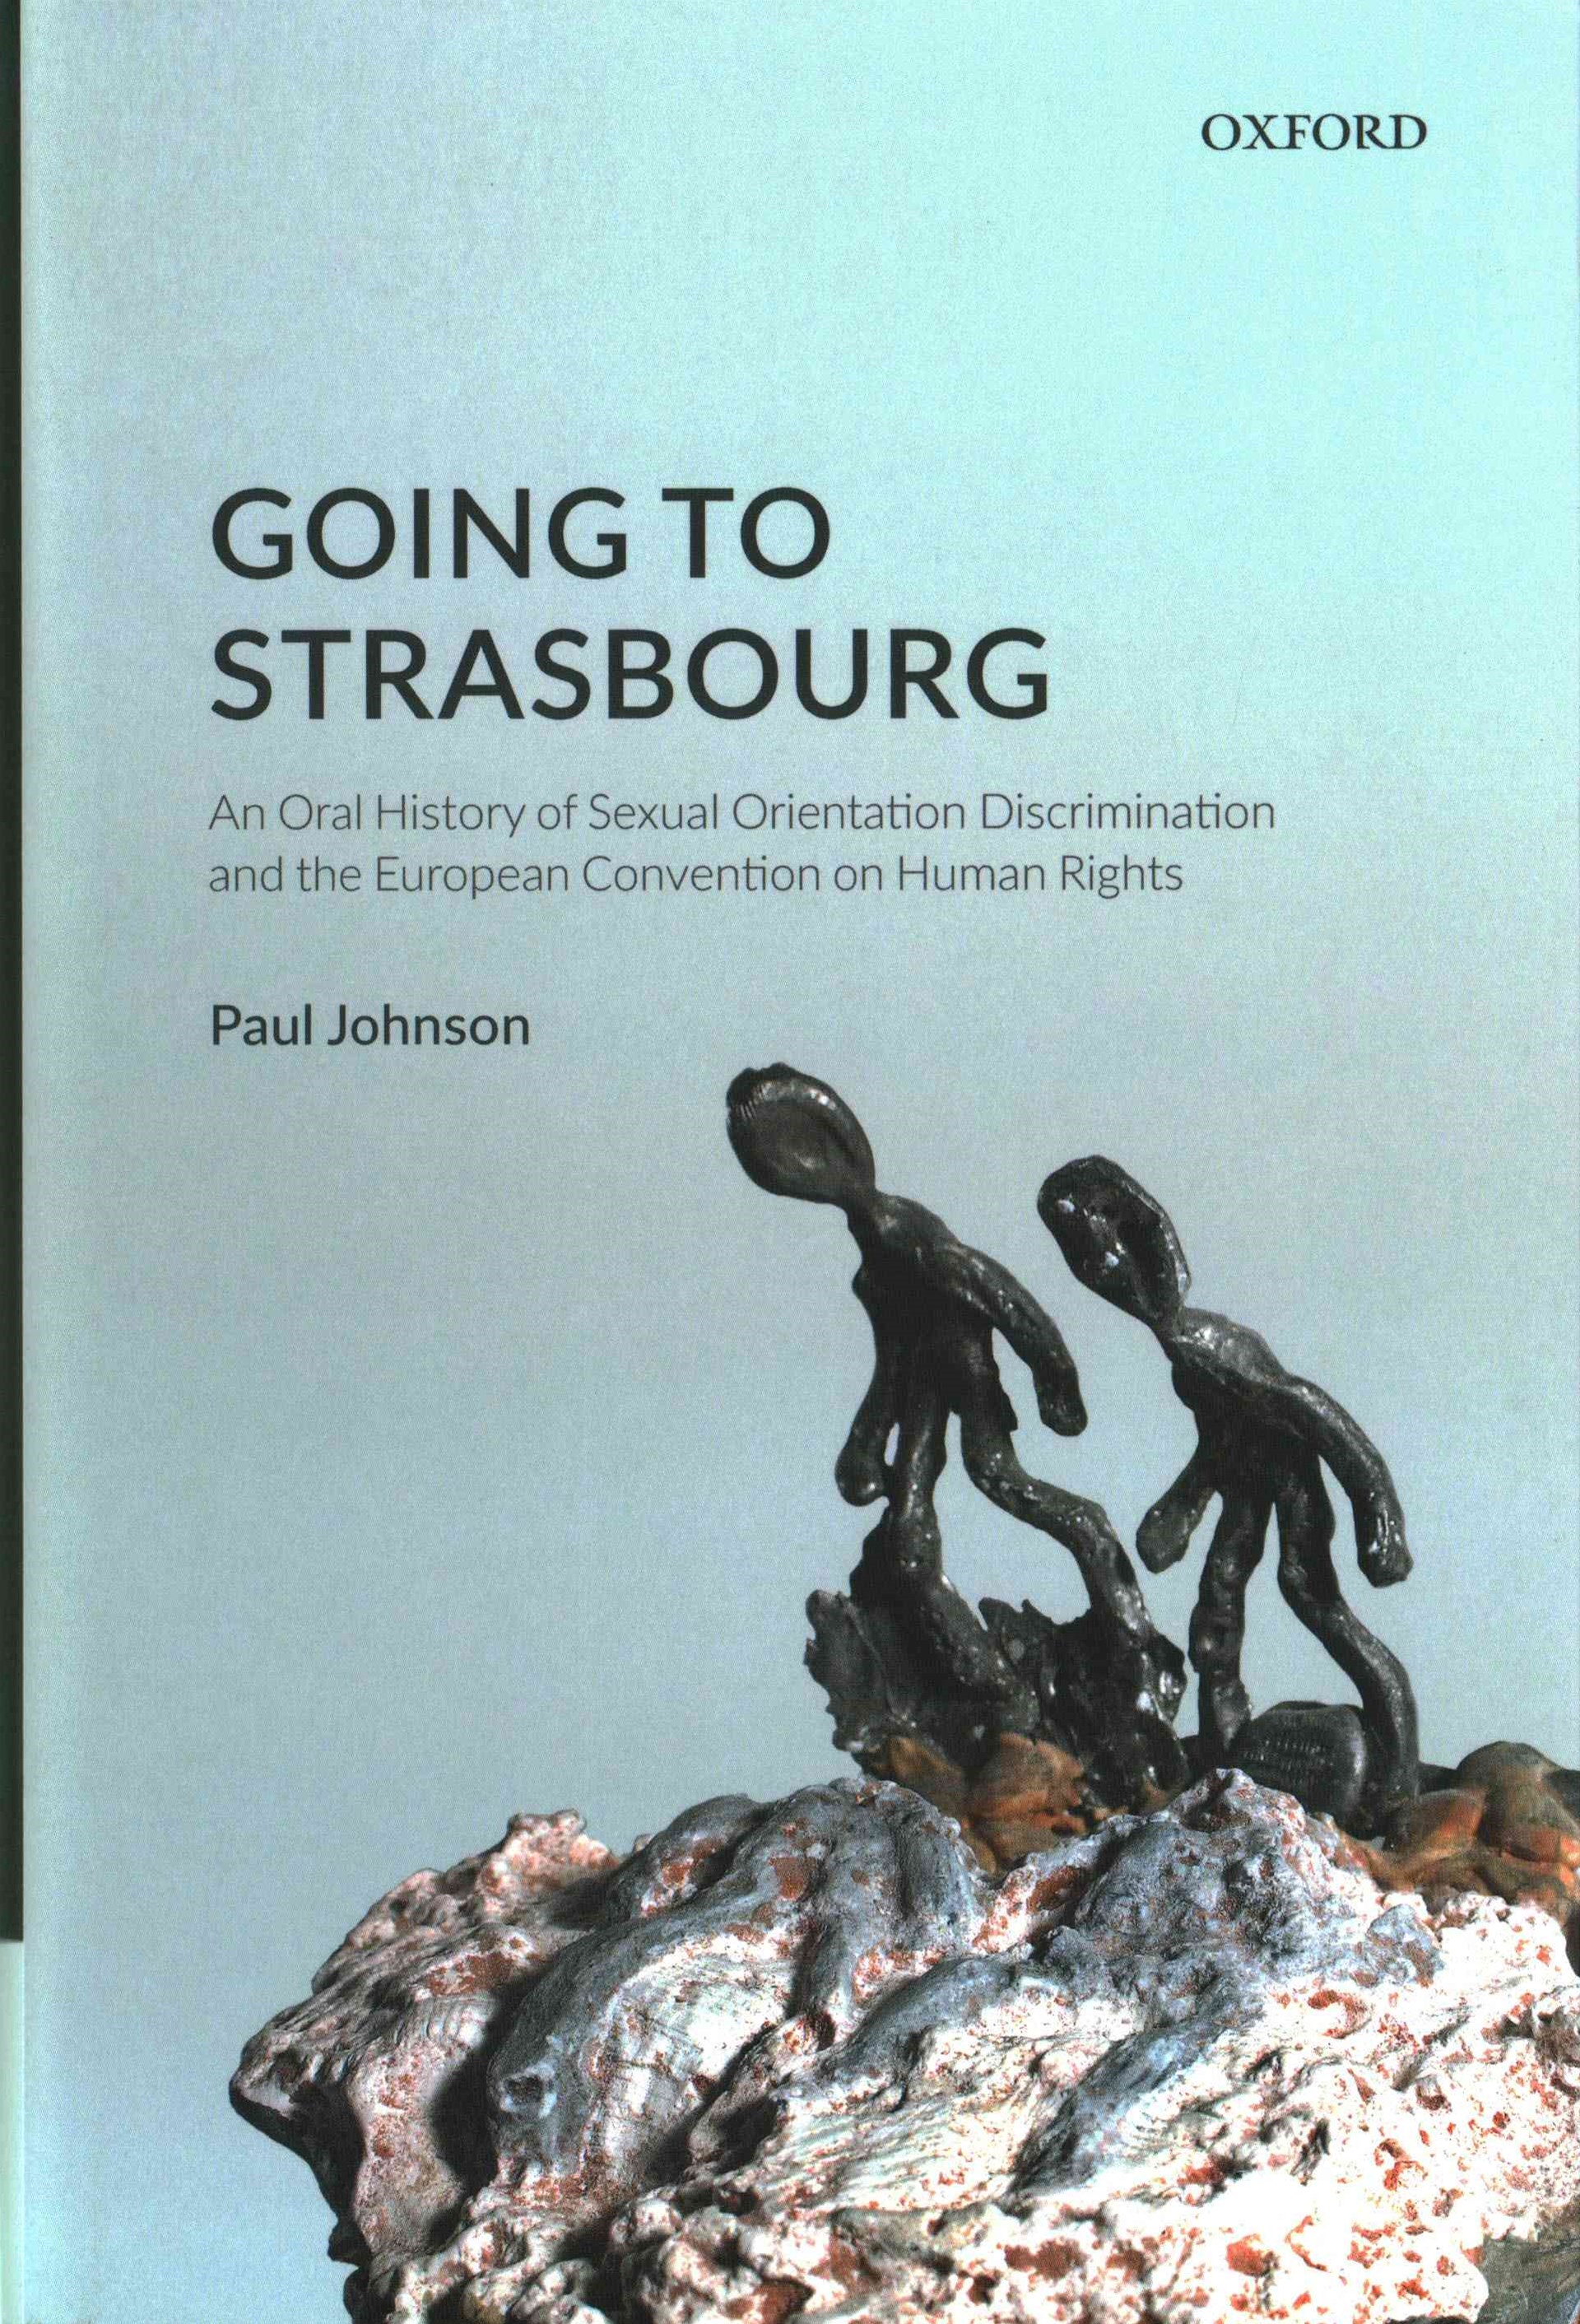 Going to Strasbourg: An Oral History of Sexual Orientation